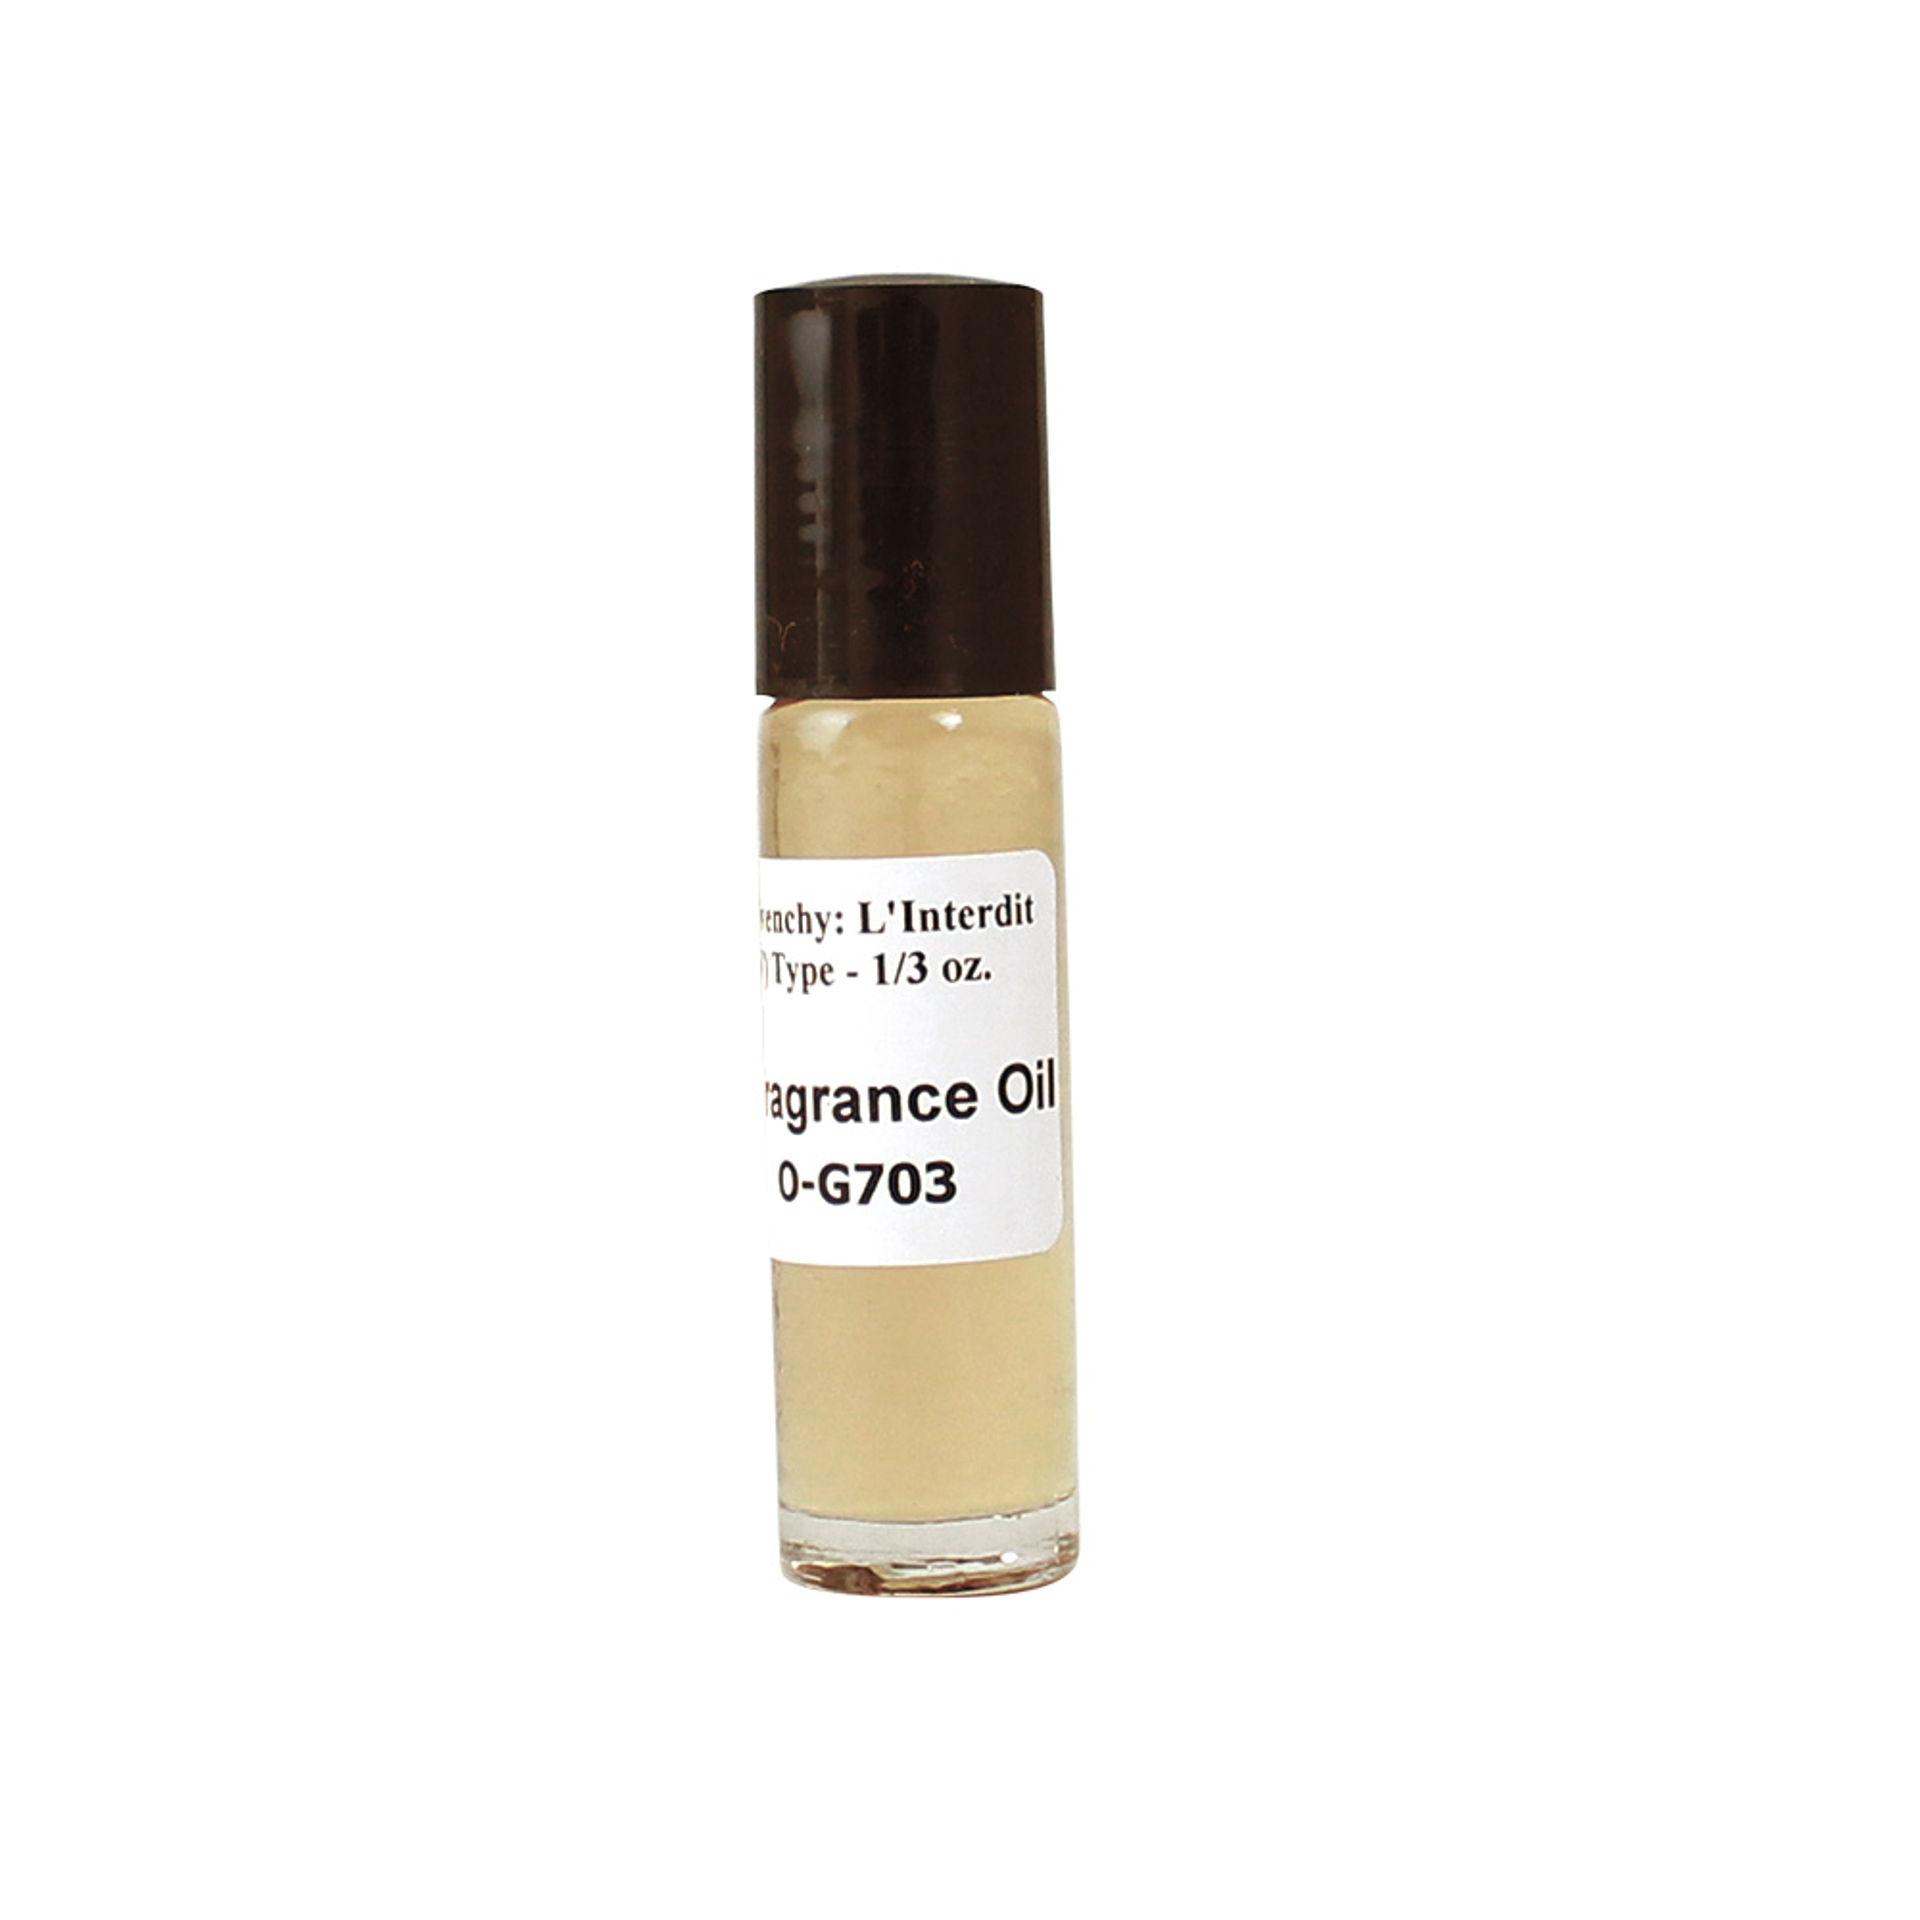 Picture of Givenchy: L'Interdit (W) Type - 1/3 oz.